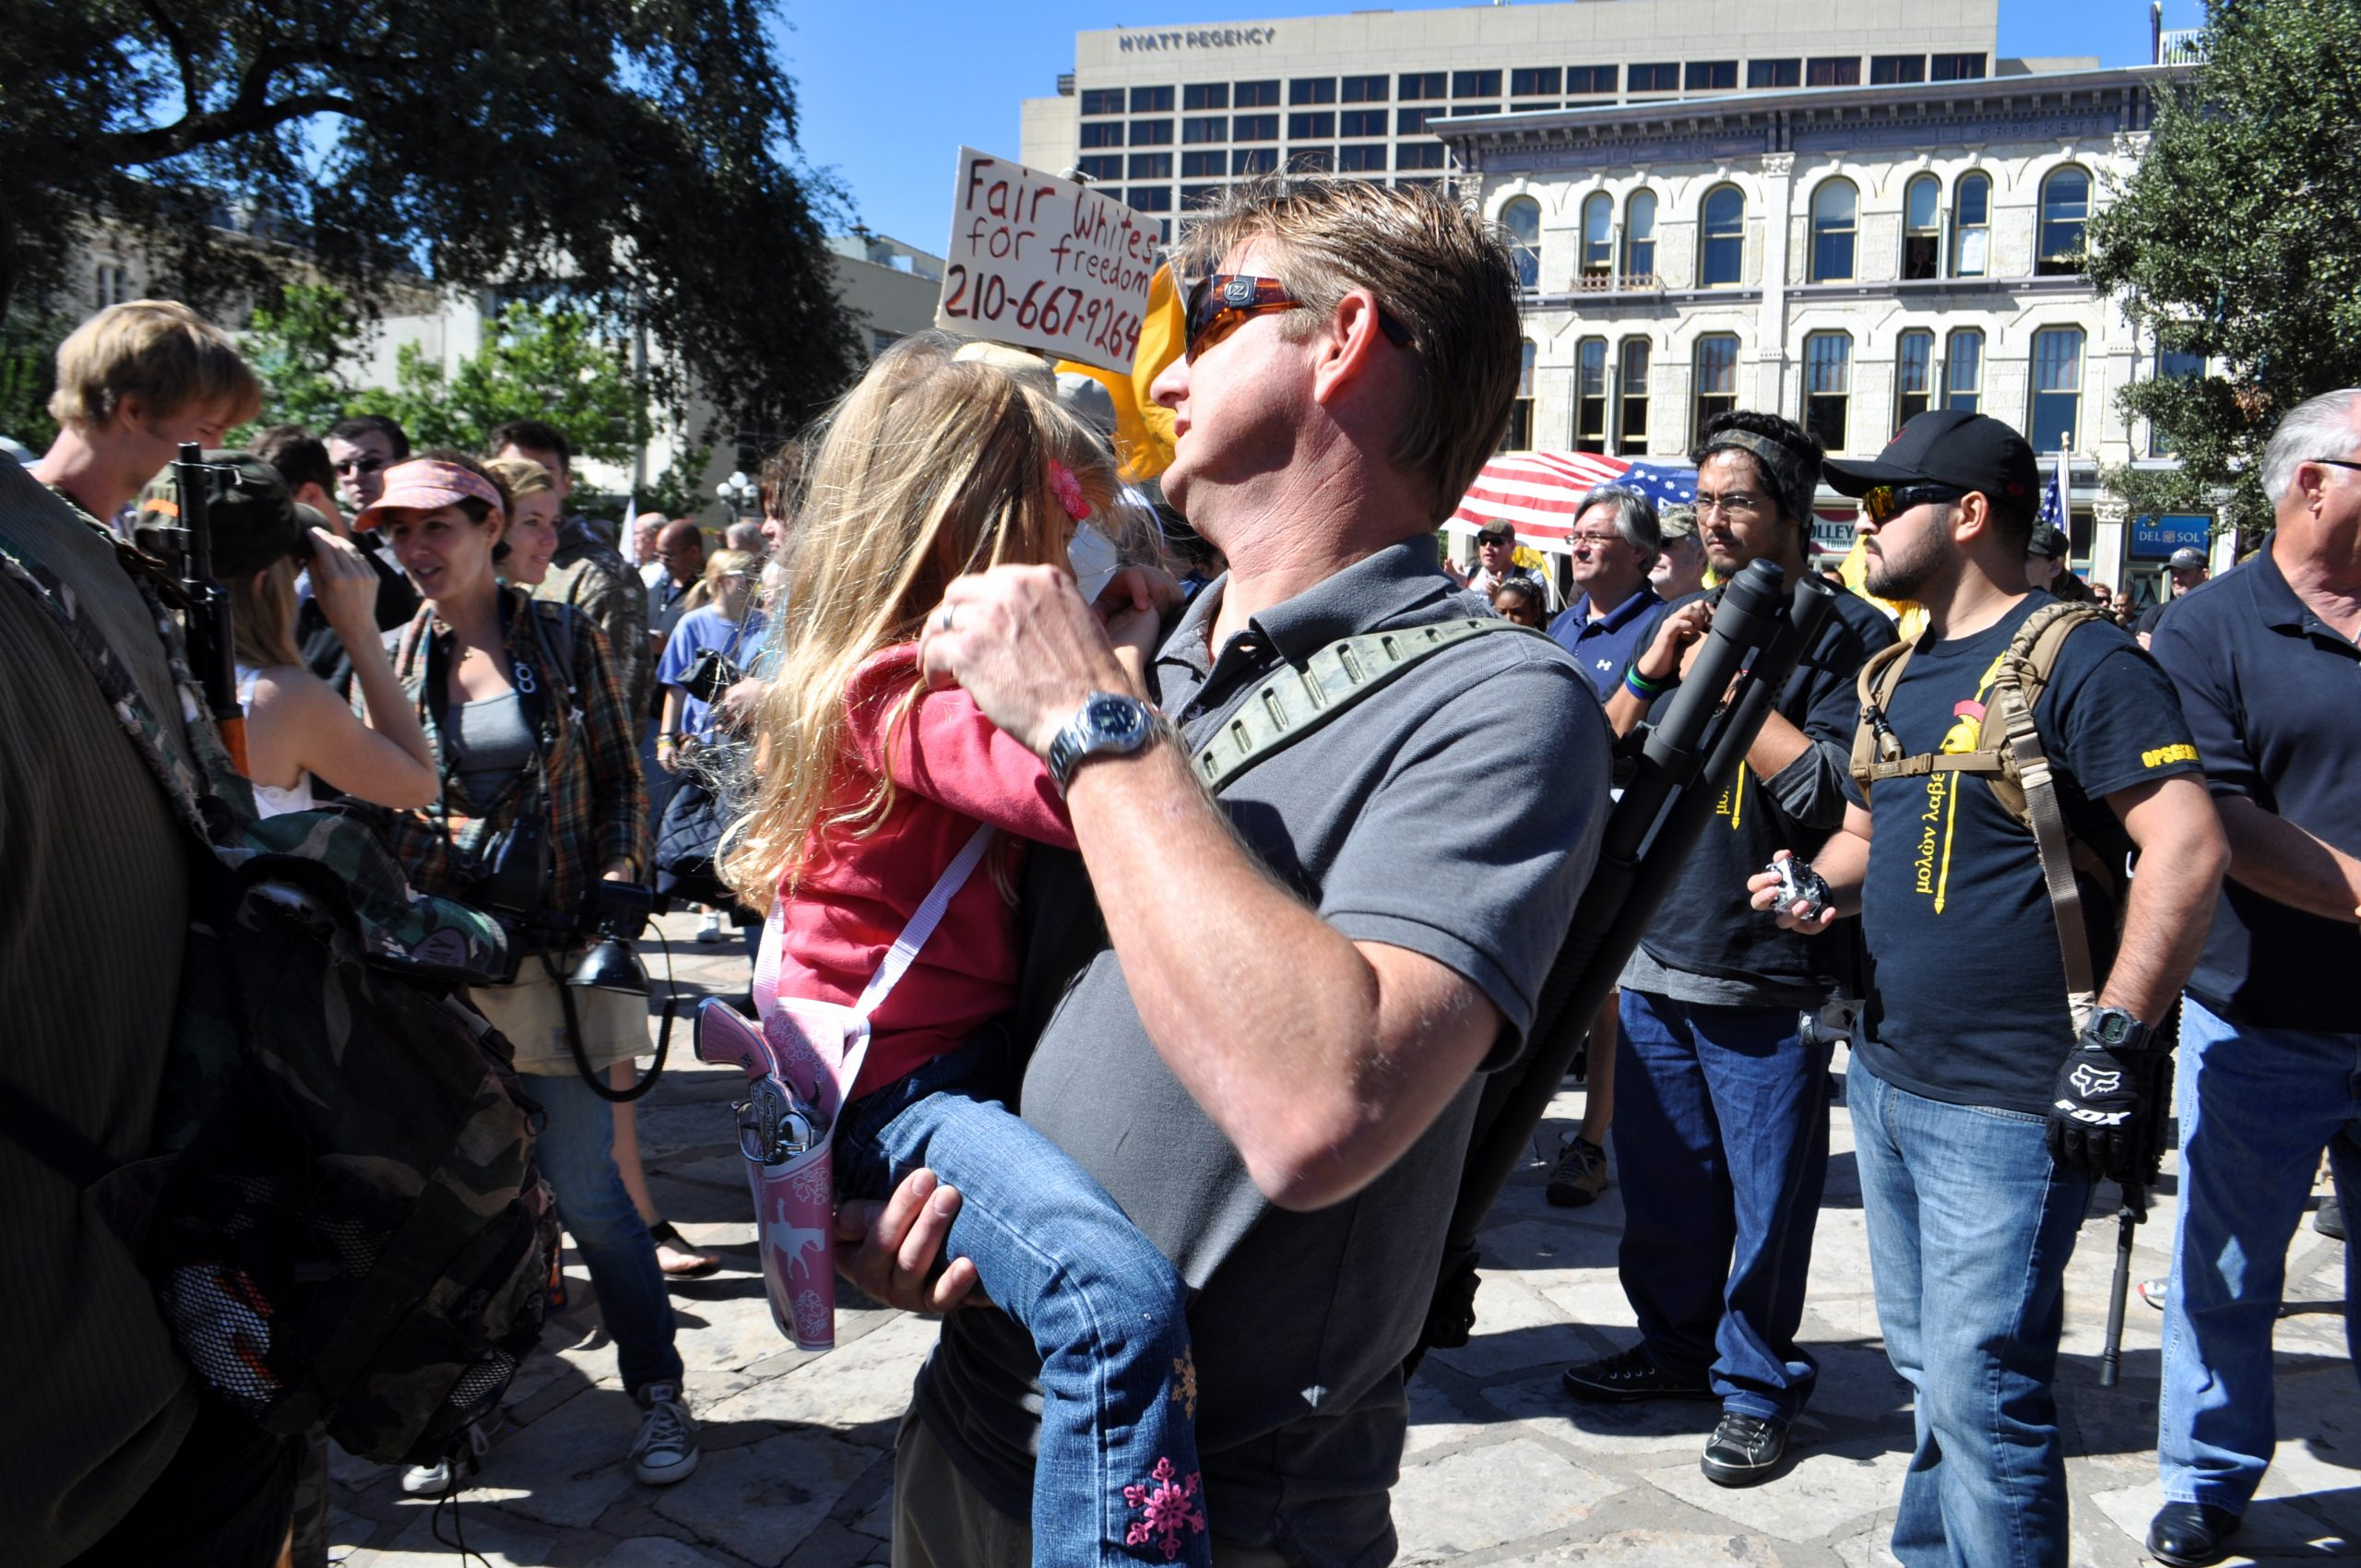 Camera shy but not gun shy, a young girl gets comfortable in her father's arms at the gun rally in Alamo Plaza. Photo by Iris Dimmick.